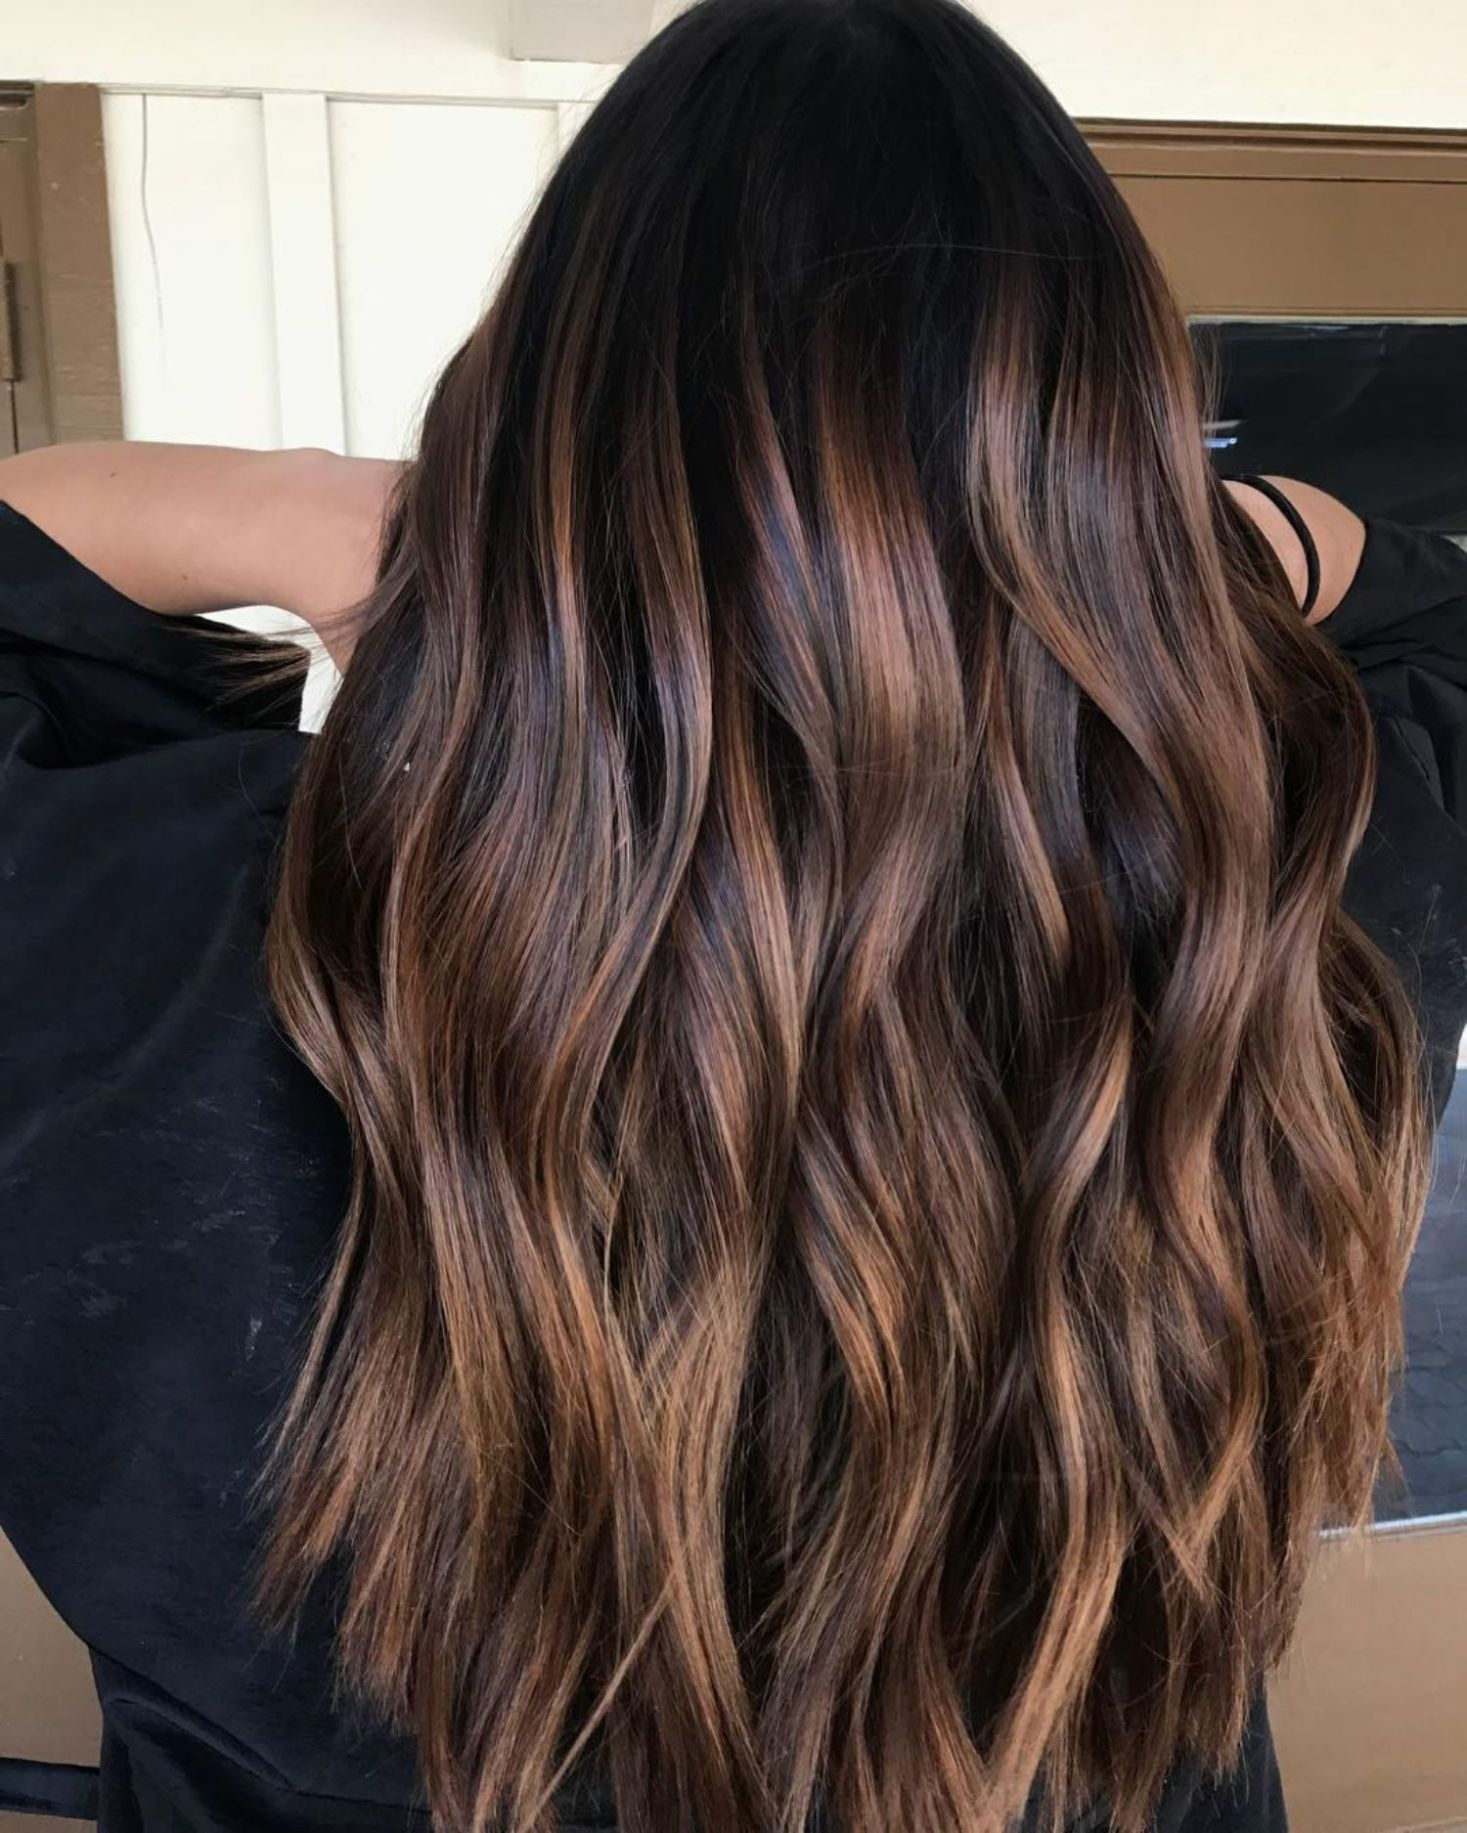 Long Brown Hair With Caramel Highlights Reflejos Para Cabello Castano Balayage Cabello Largo Pelo Moreno Con Mechas